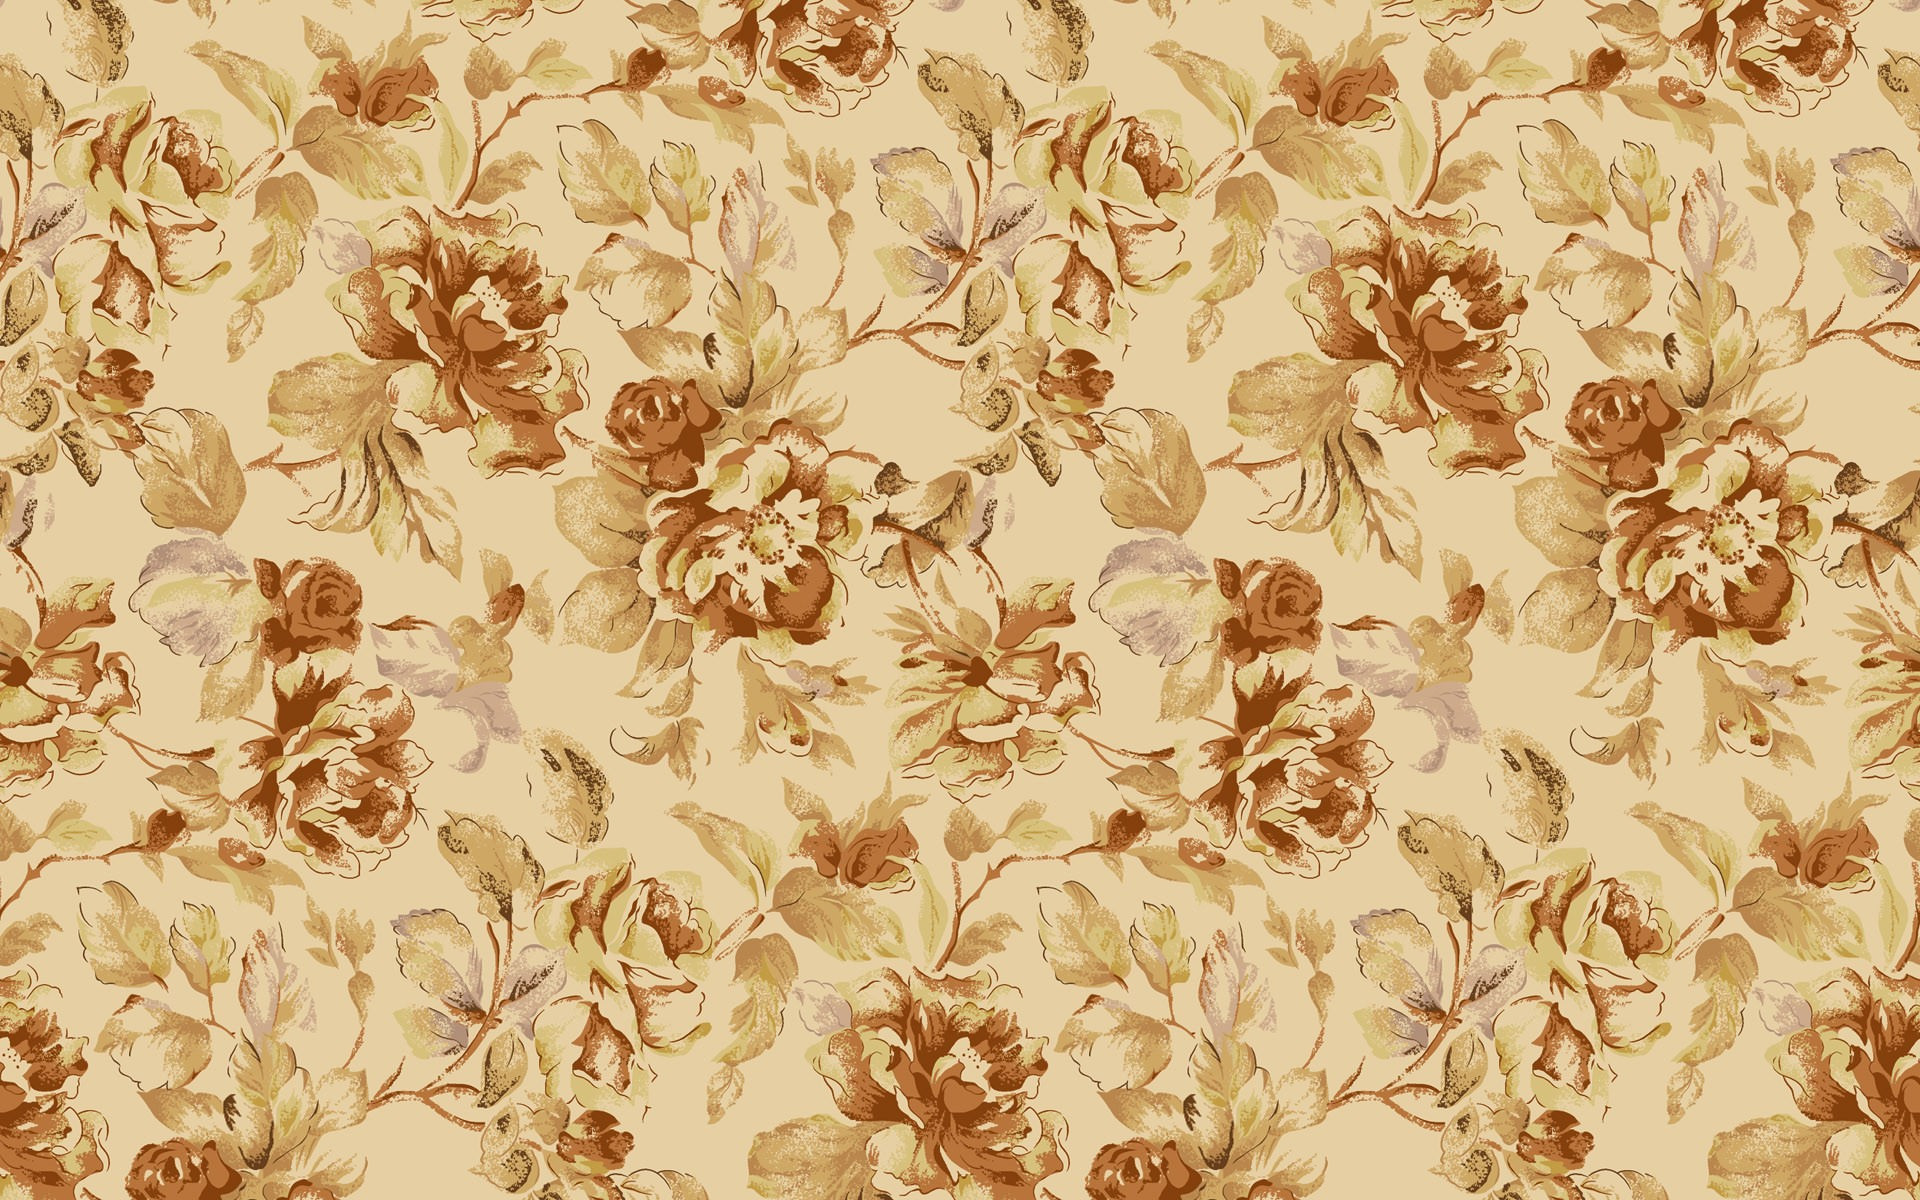 Download 15 Floral Vintage Wallpapers 1920x1200